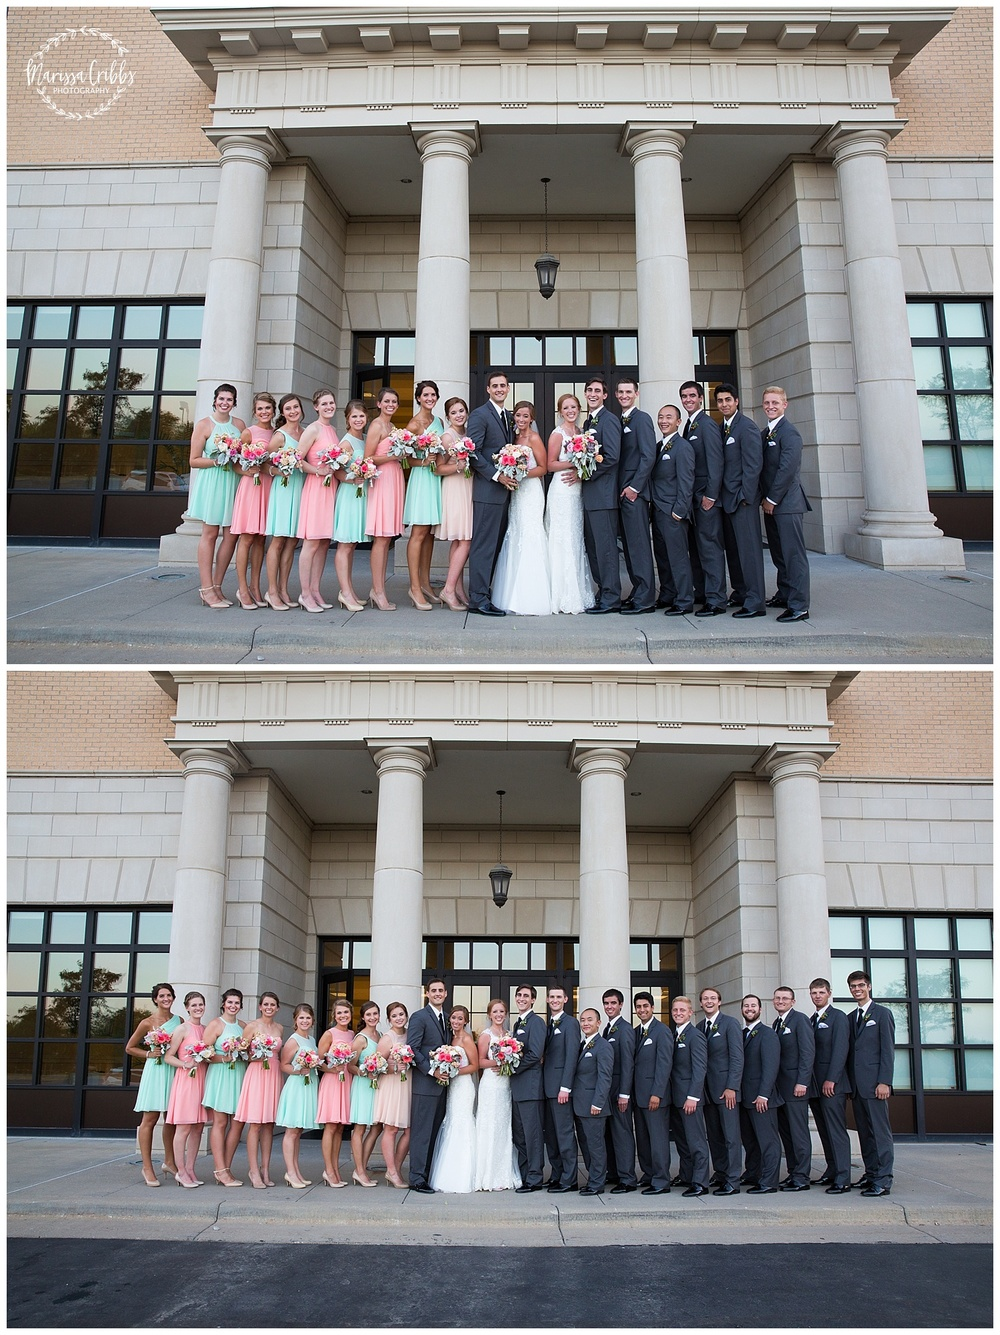 Twin Double Wedding | Union Horse Distilling Co. | Marissa Cribbs Photography | KC Weddings_0162.jpg